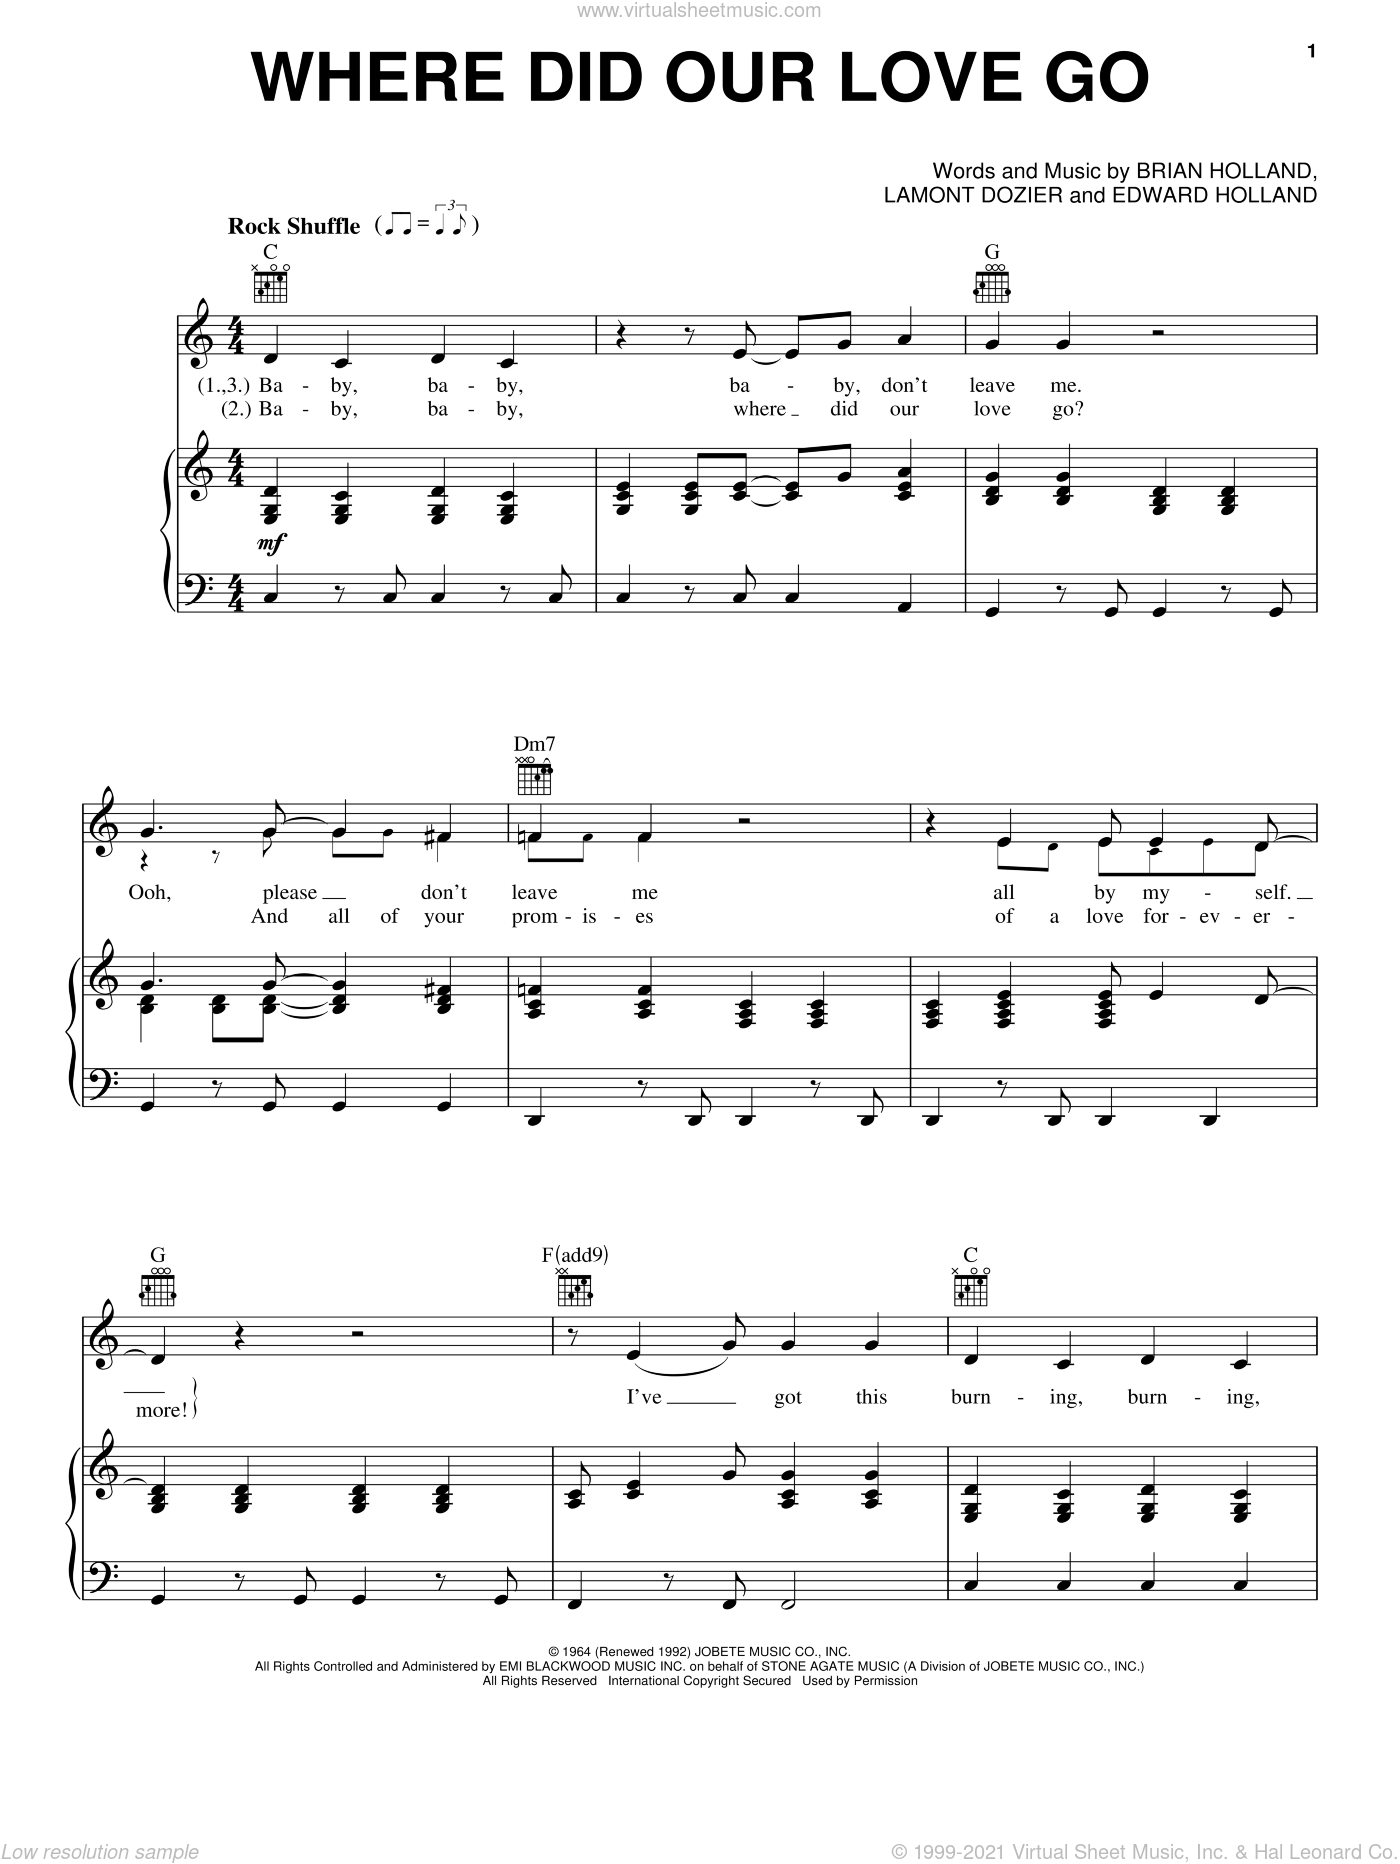 Where Did Our Love Go sheet music for voice, piano or guitar by The Supremes, Brian Holland, Eddie Holland and Lamont Dozier, intermediate. Score Image Preview.